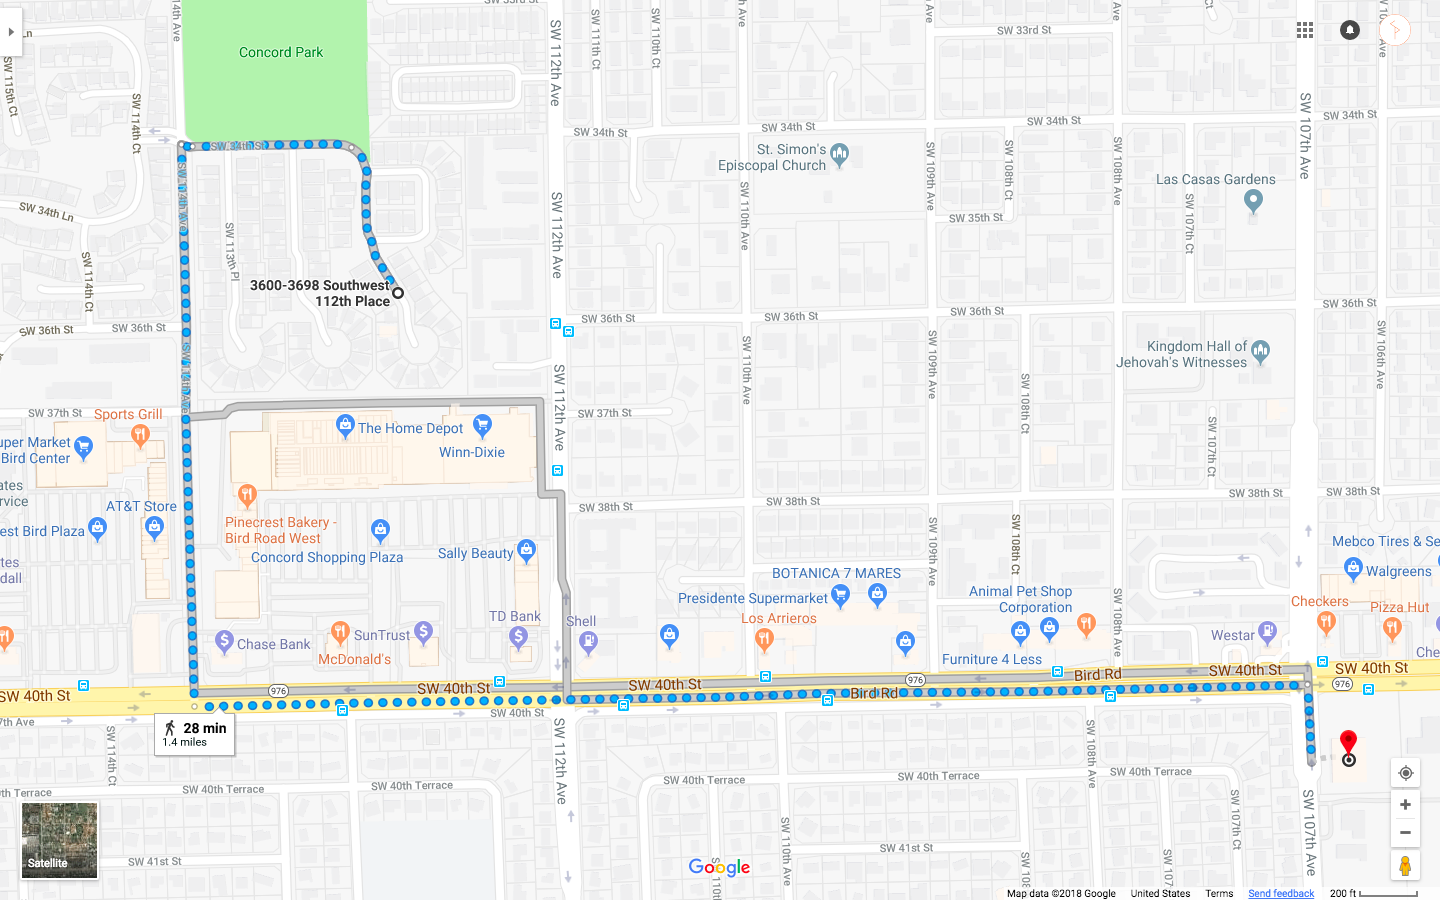 My Miami Walk from home to CVS